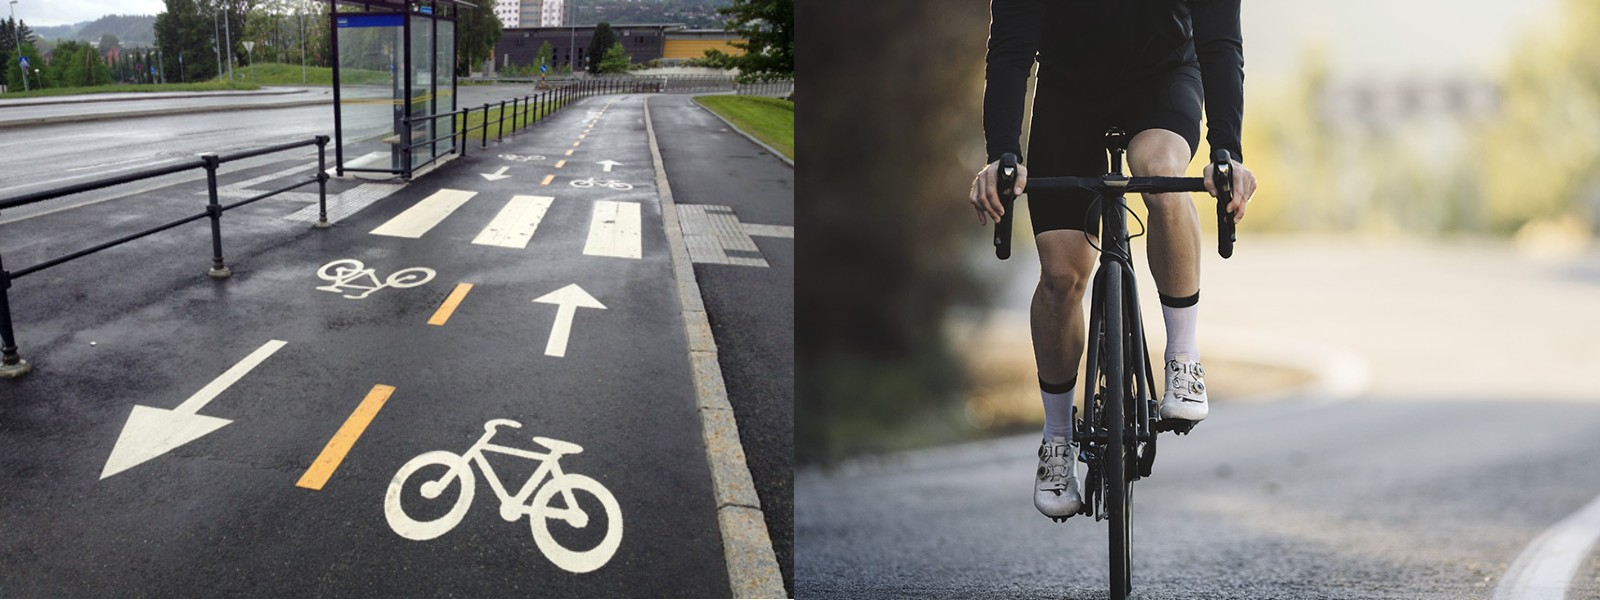 Cycle path from Colombo Port City to Diyatha Uyana; Construction to end in 2021